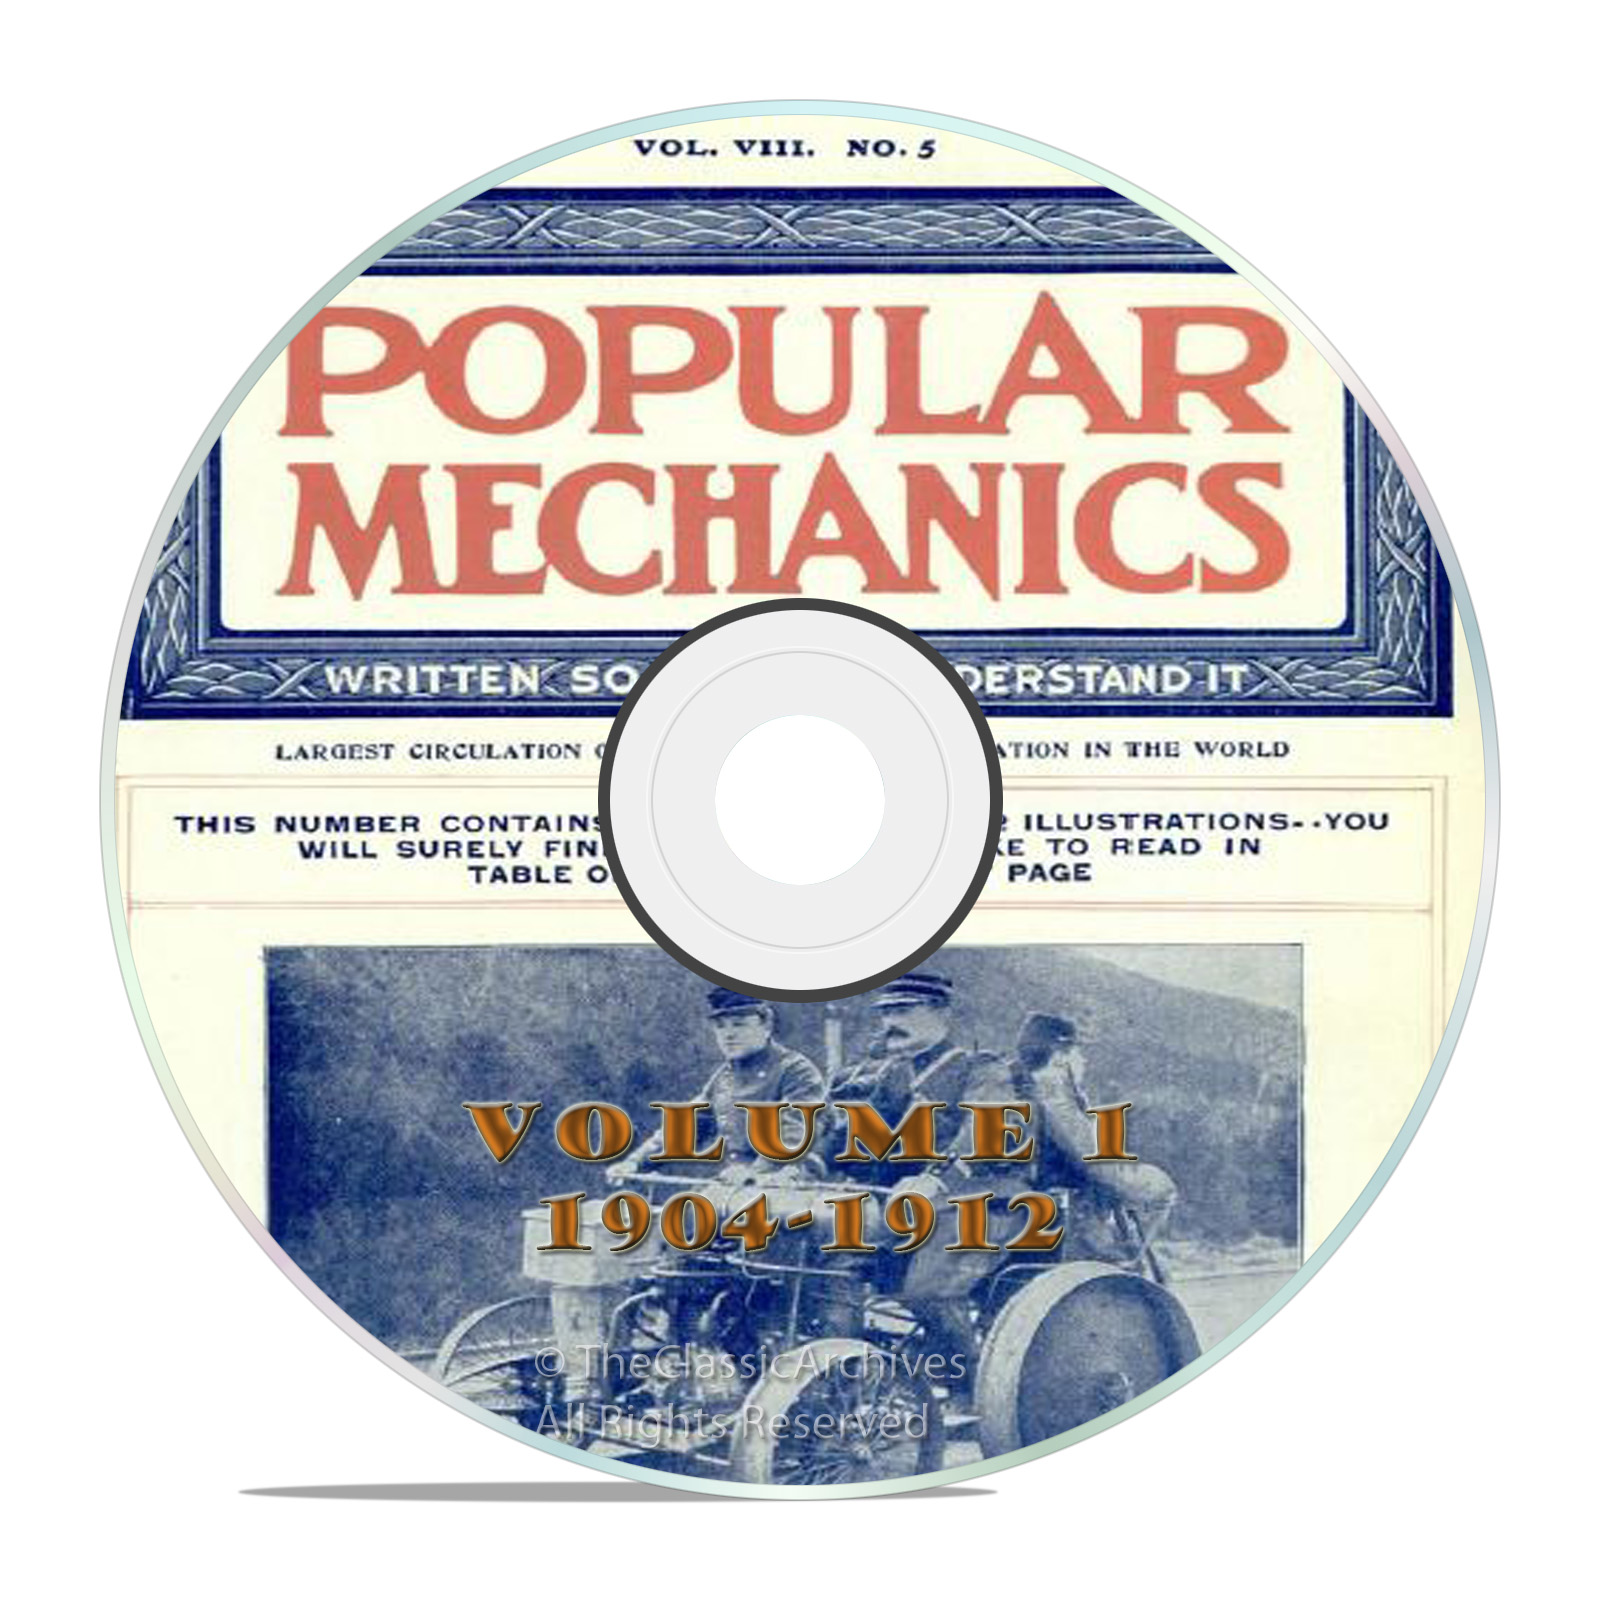 Vintage Popular Mechanics Magazine, Volume 1 DVD, 1904-1912, 76 issues